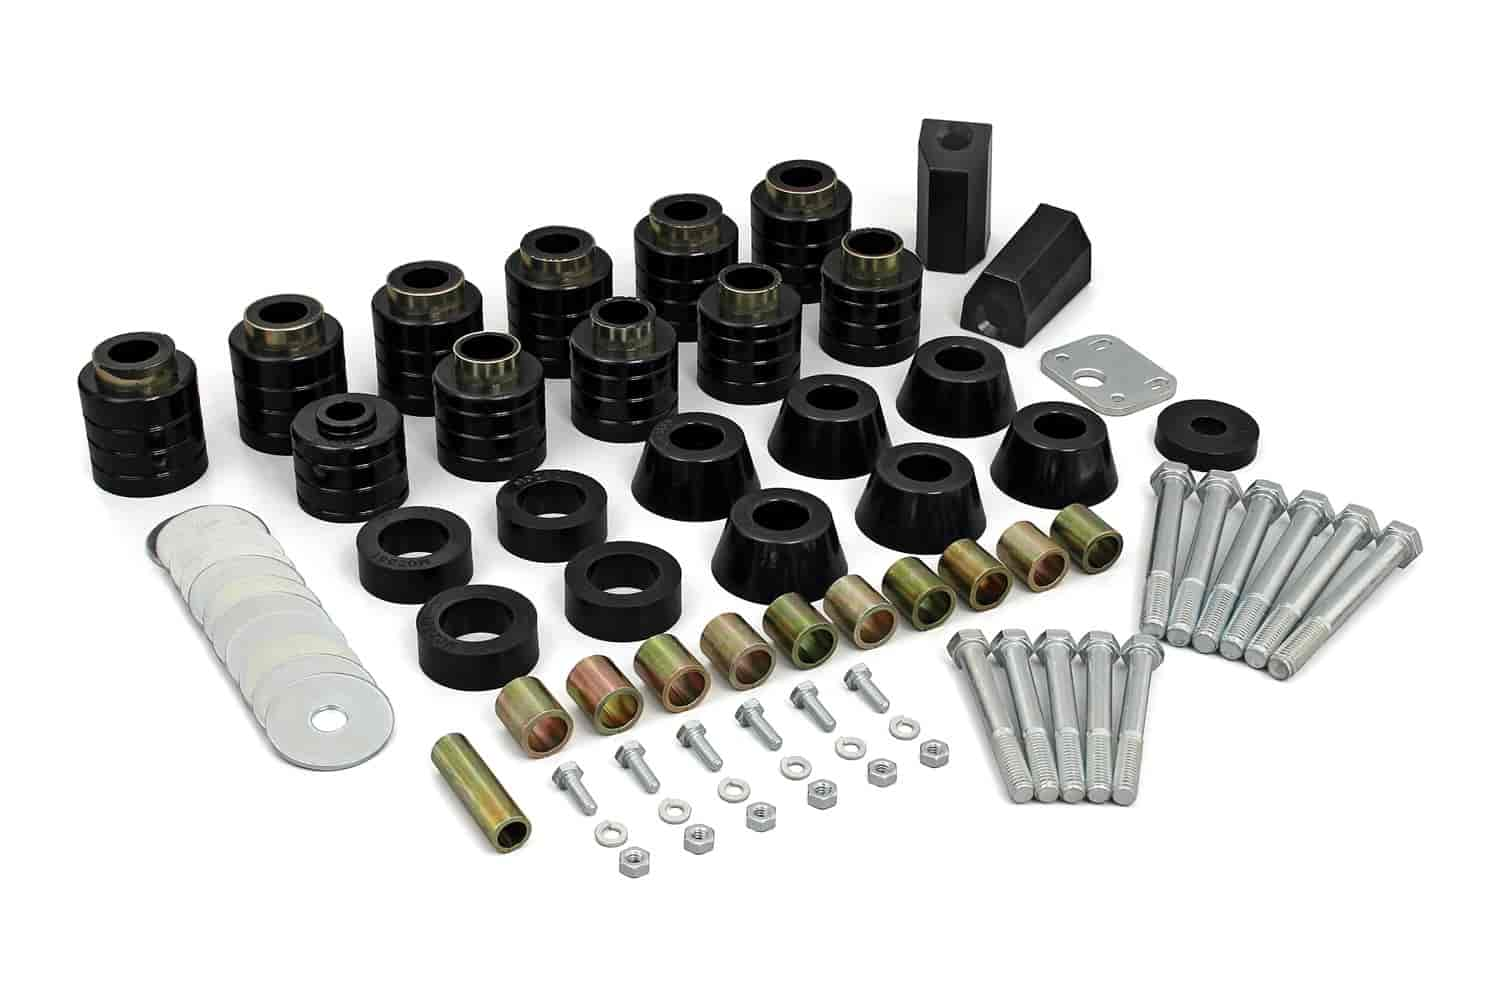 Daystar KJ04505BK - Daystar Body Mount Bushing Kits